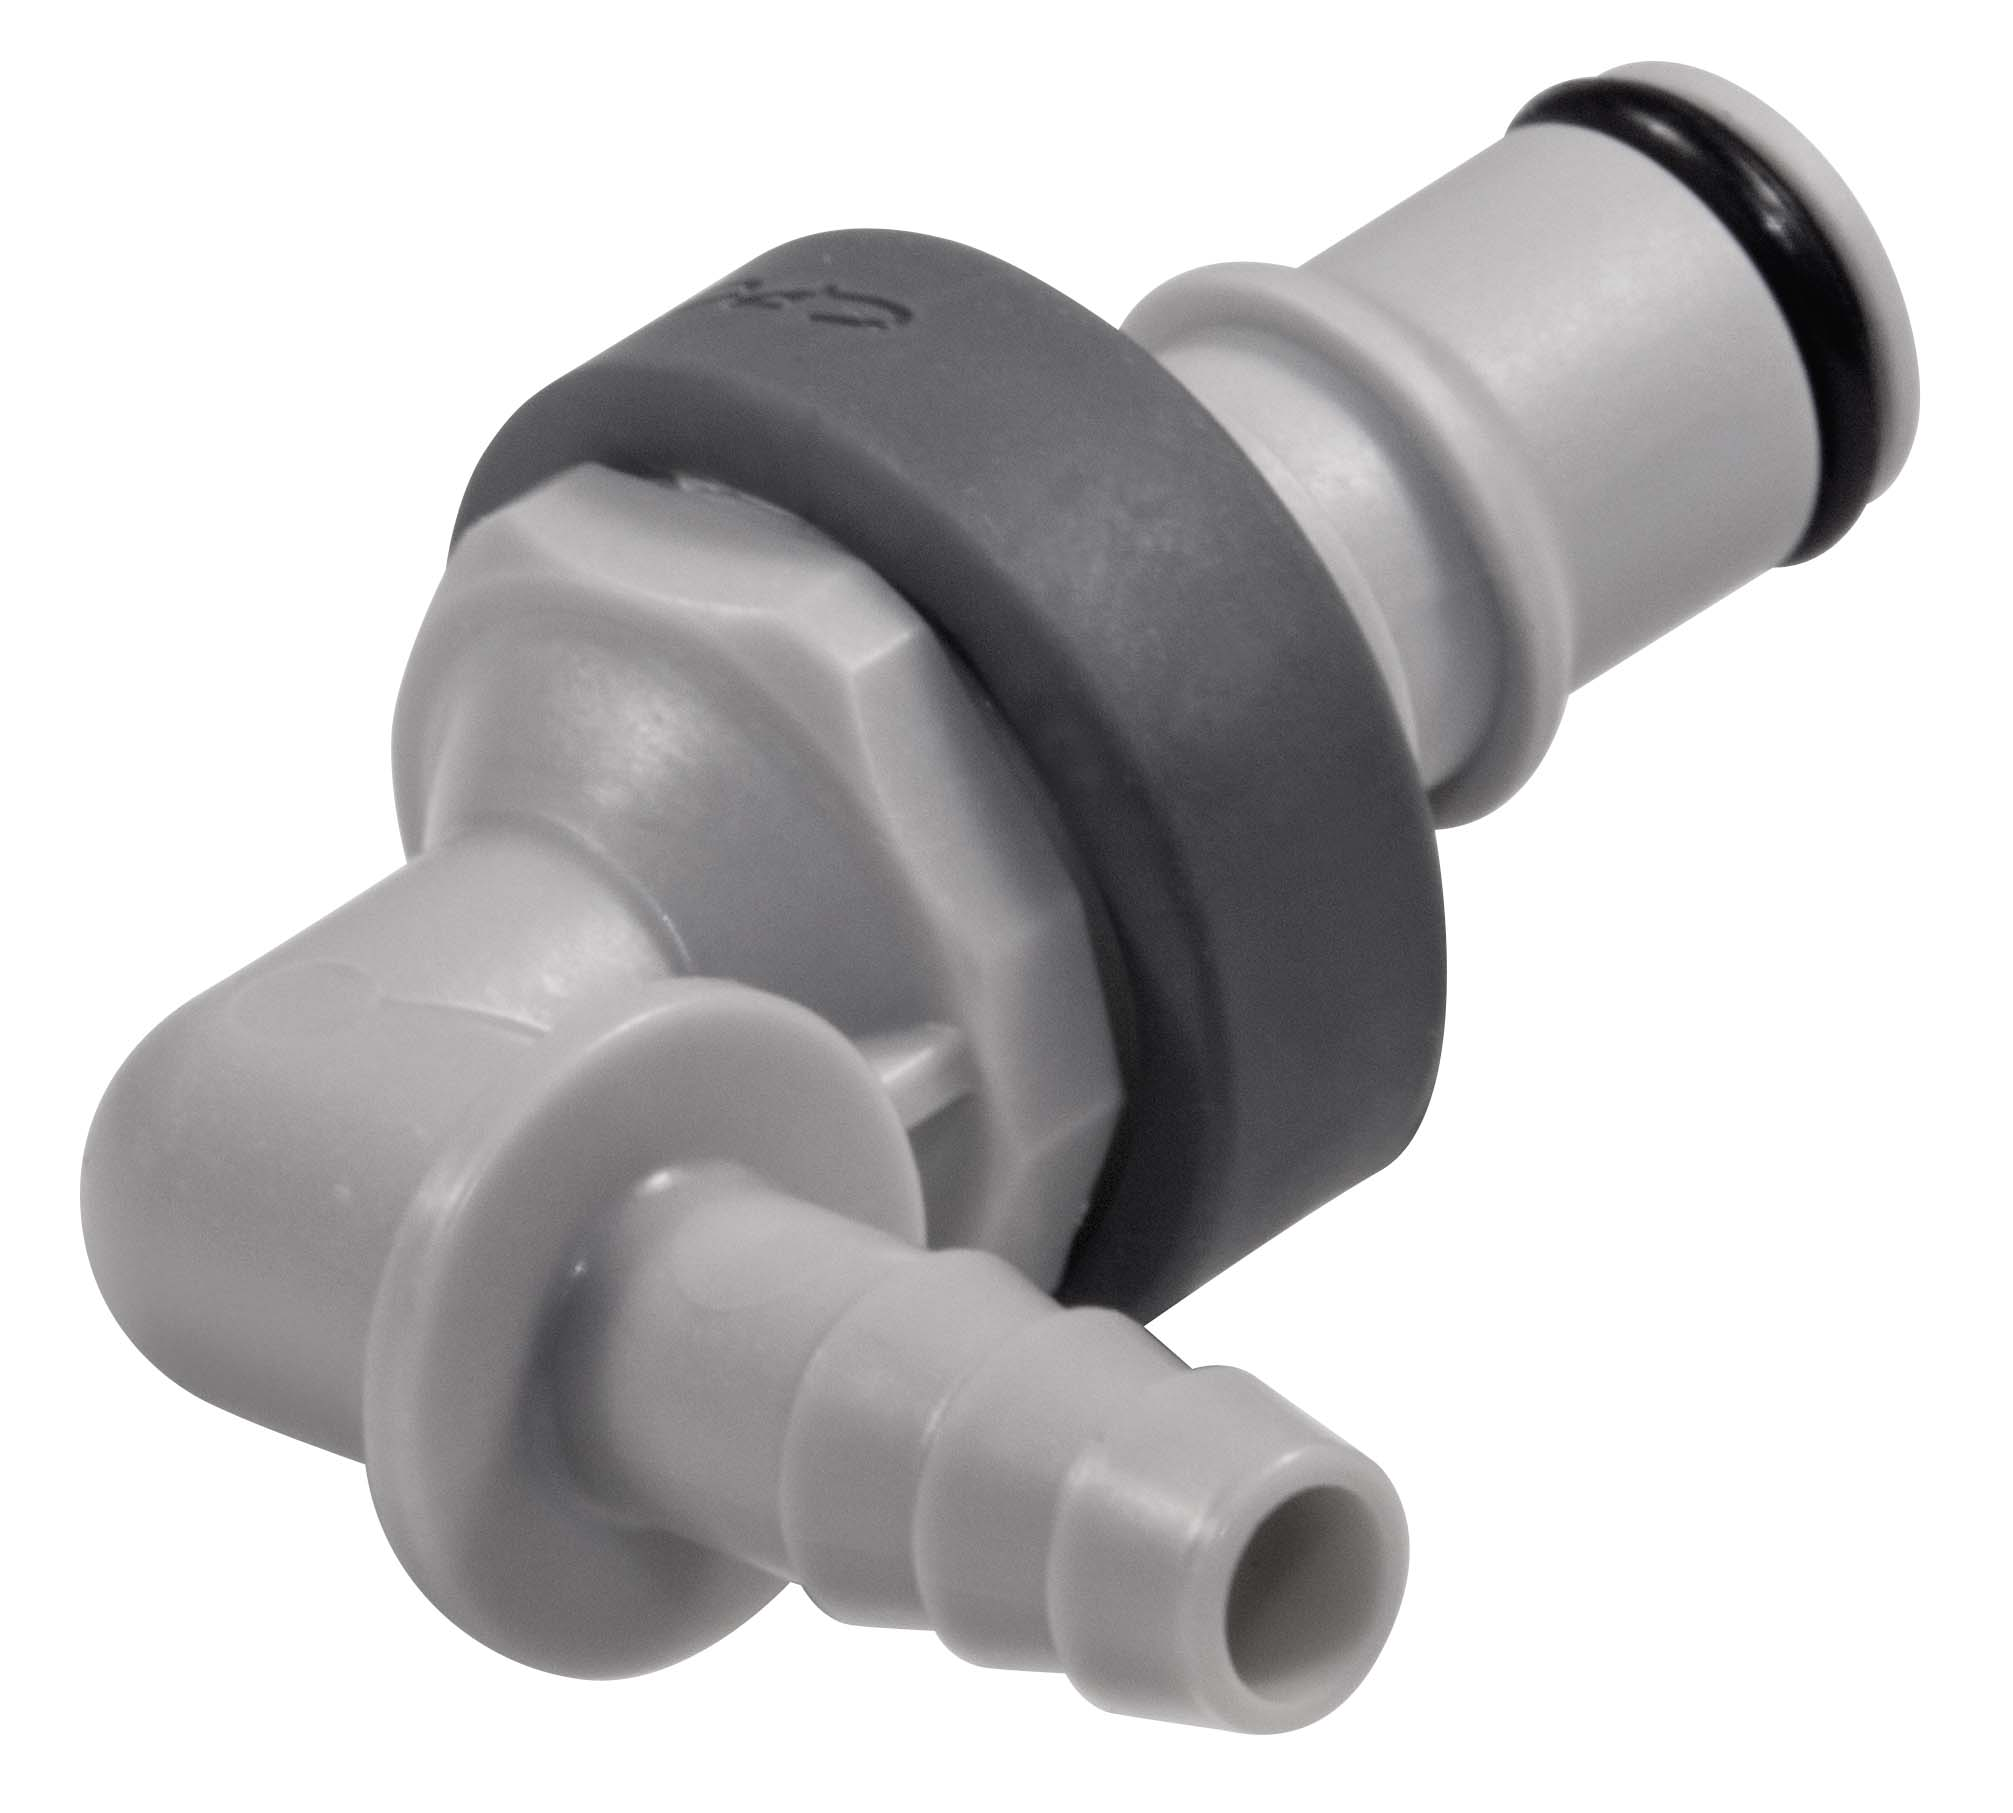 1/4 Hose Barb Valved Elbow Coupling Insert